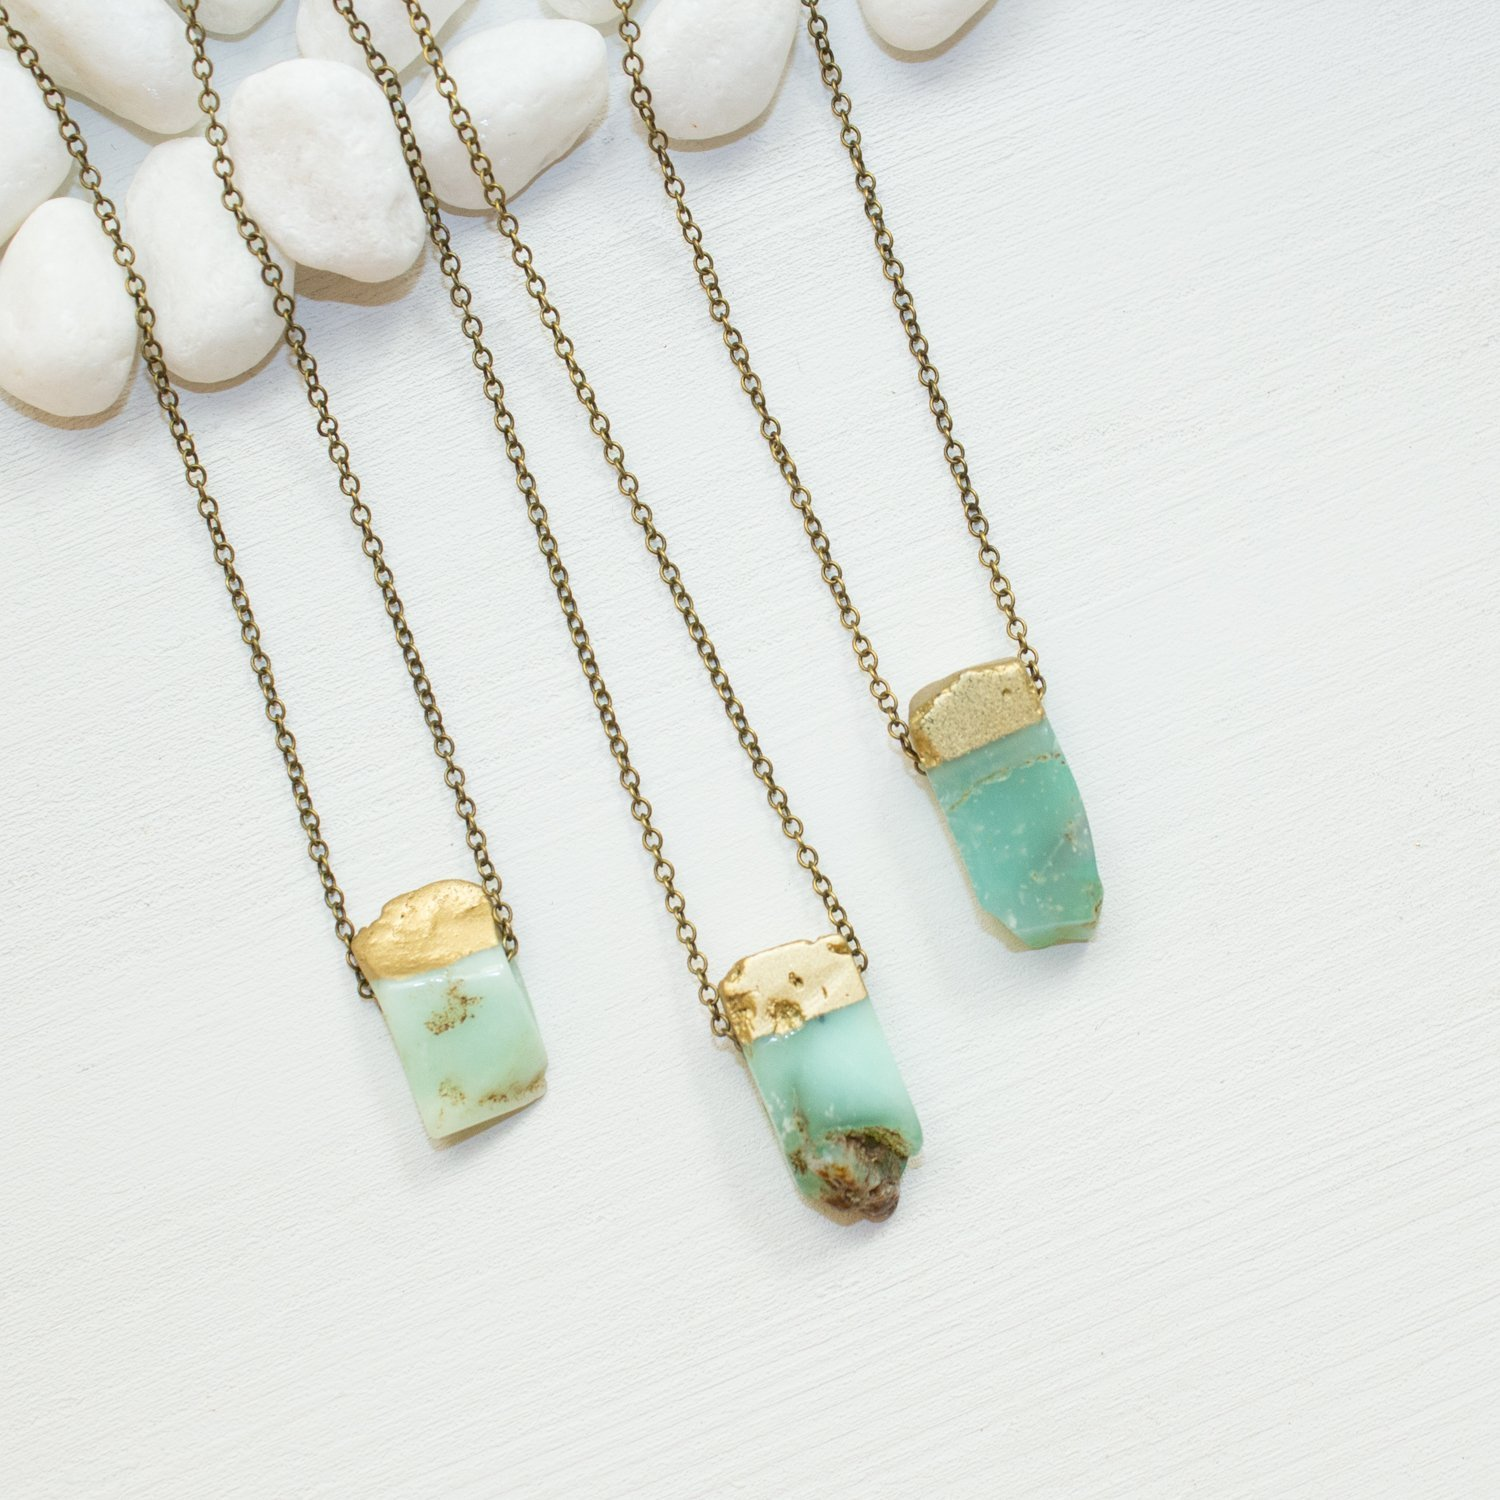 pendant false amulette cartier chrysoprase crop upscale the jewellery product necklace subsampling de shop scale editor